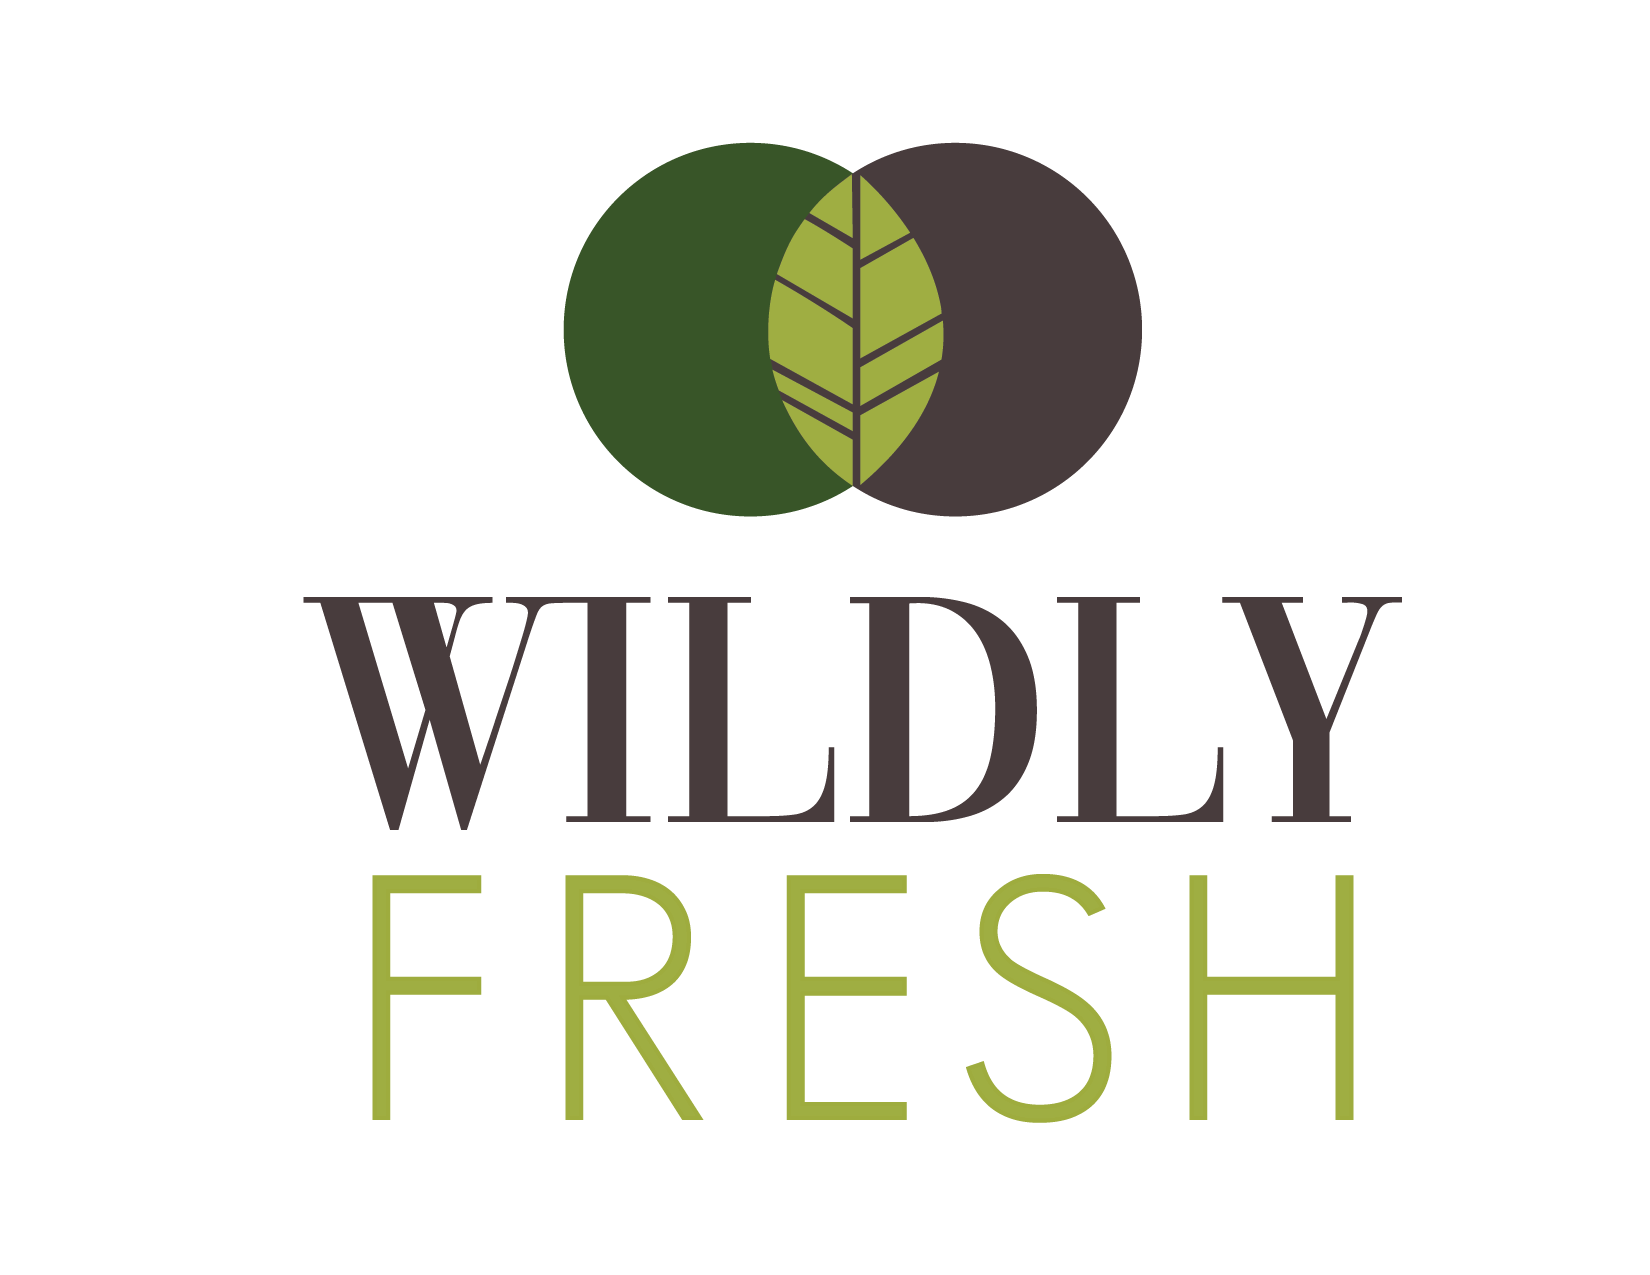 Wildly fresh logo